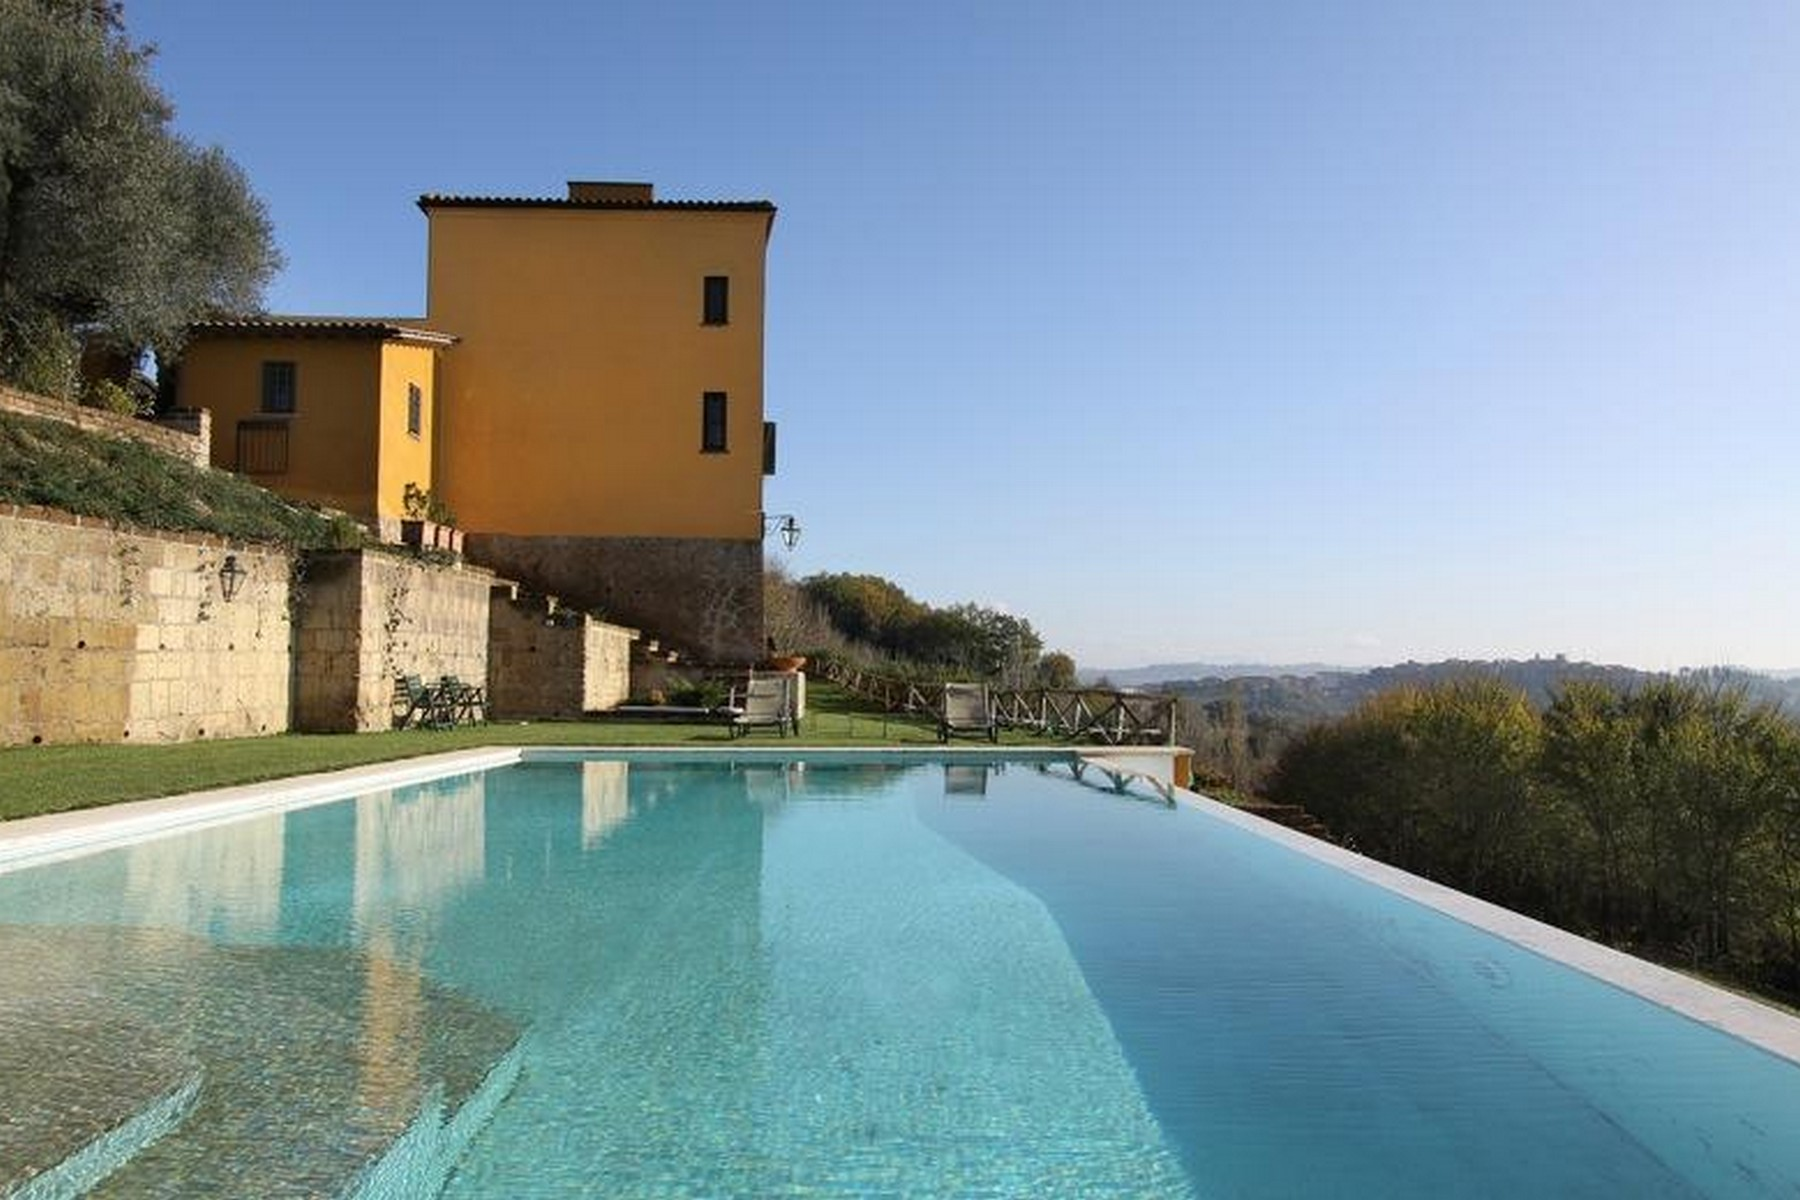 Additional photo for property listing at Villa with 9 ha lands just 40 mins from Rome Otricoli Otricoli, Terni 05030 Italy